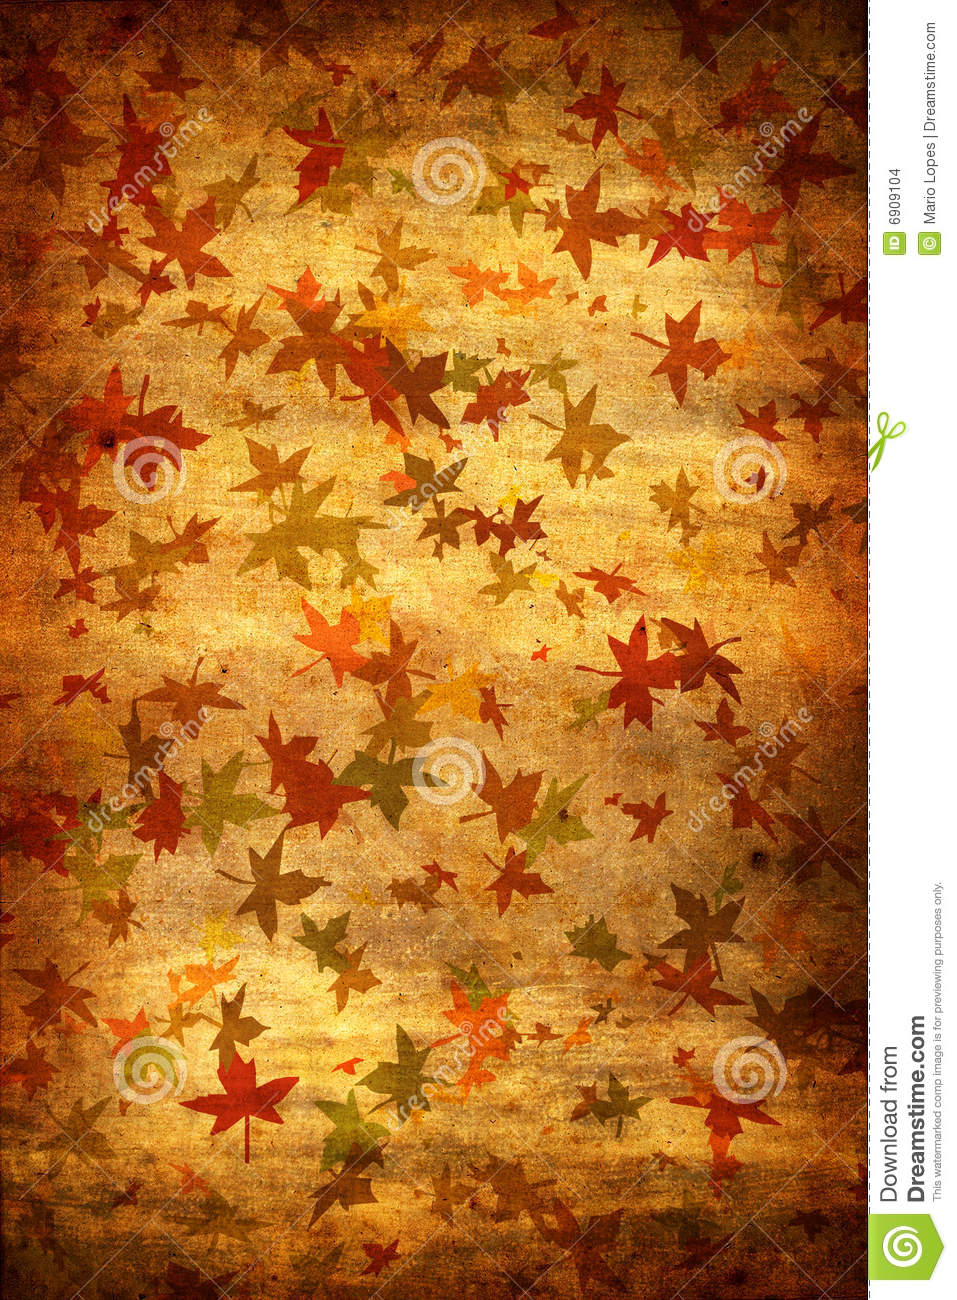 Fall Wallpaper Backgrounds Hd Mapple Leafs Autumn Grunge Background Stock Illustration